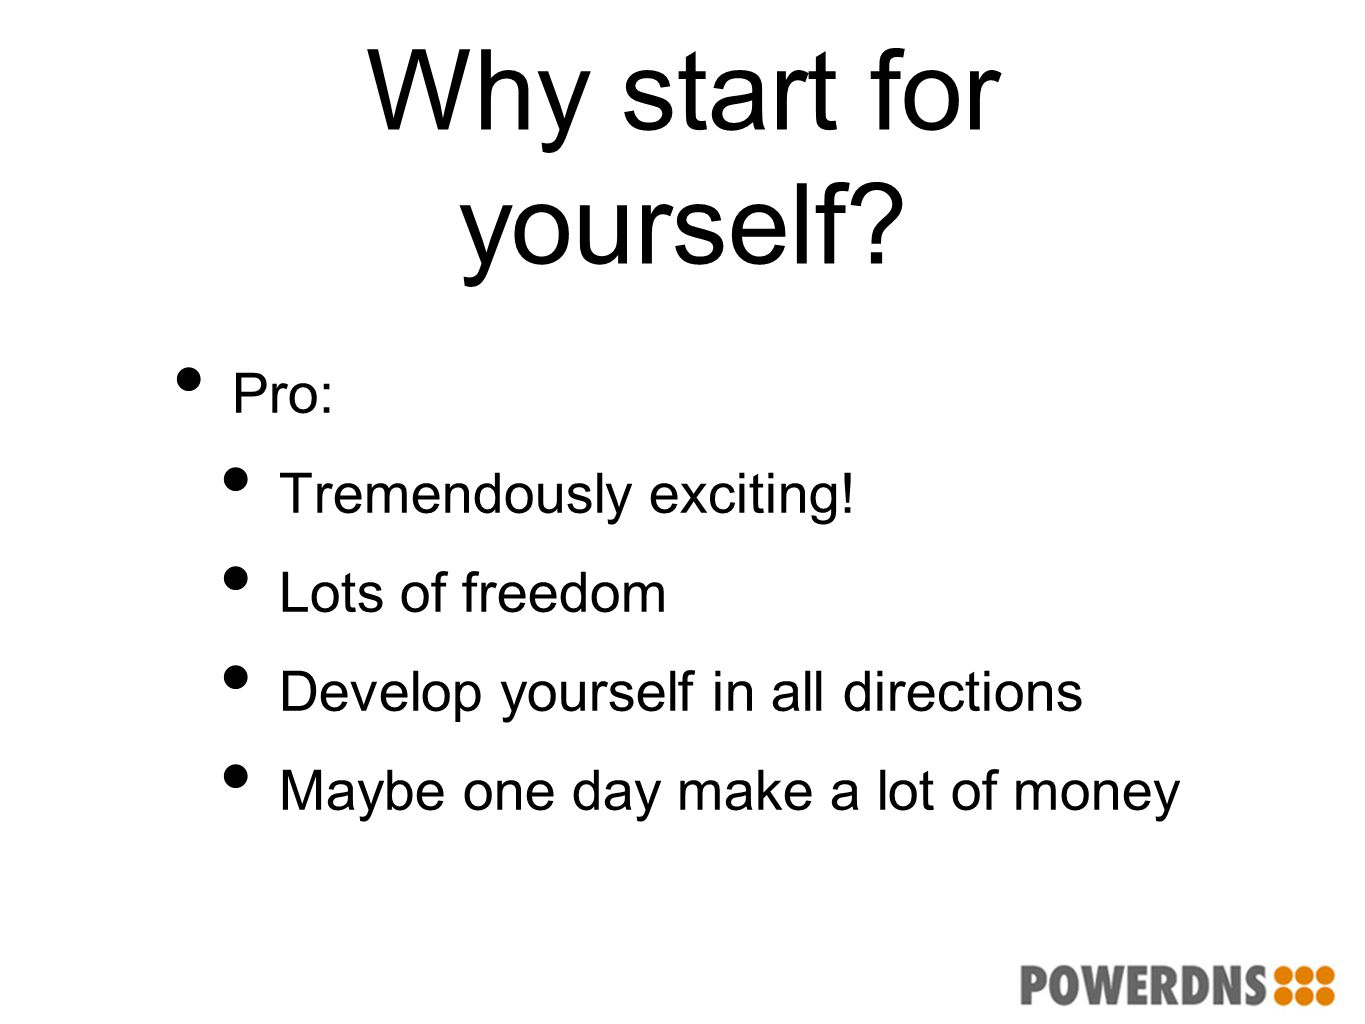 Why start for yourself? Pro: Tremendously exciting! Lots of freedom Develop yourself in all directions Maybe one day make a lot of money